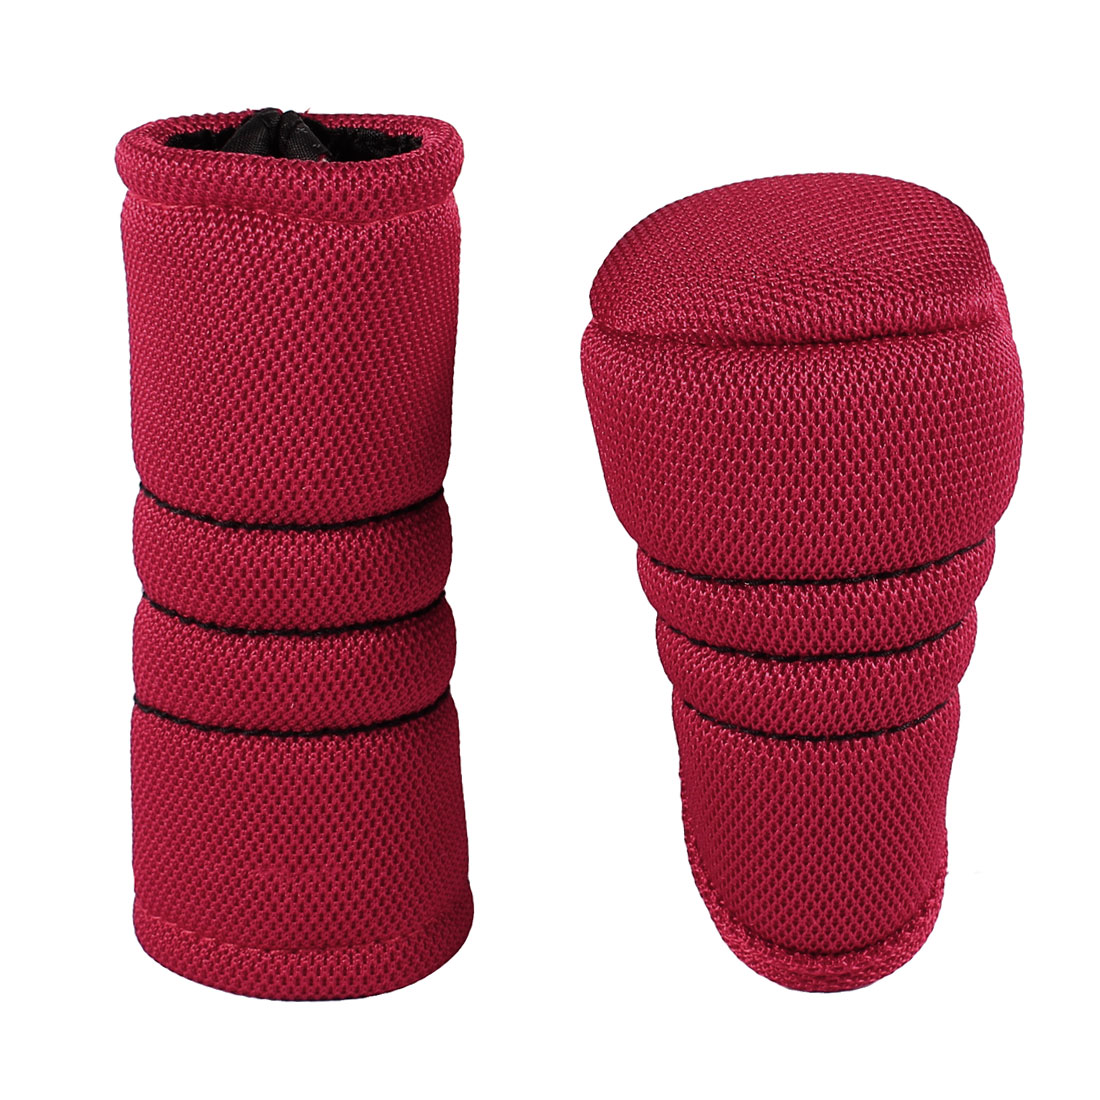 Car Auto Red Nylon Zip up Gear Shift Knob Cover + Hand Brake Cover Sleeve Protector Pad